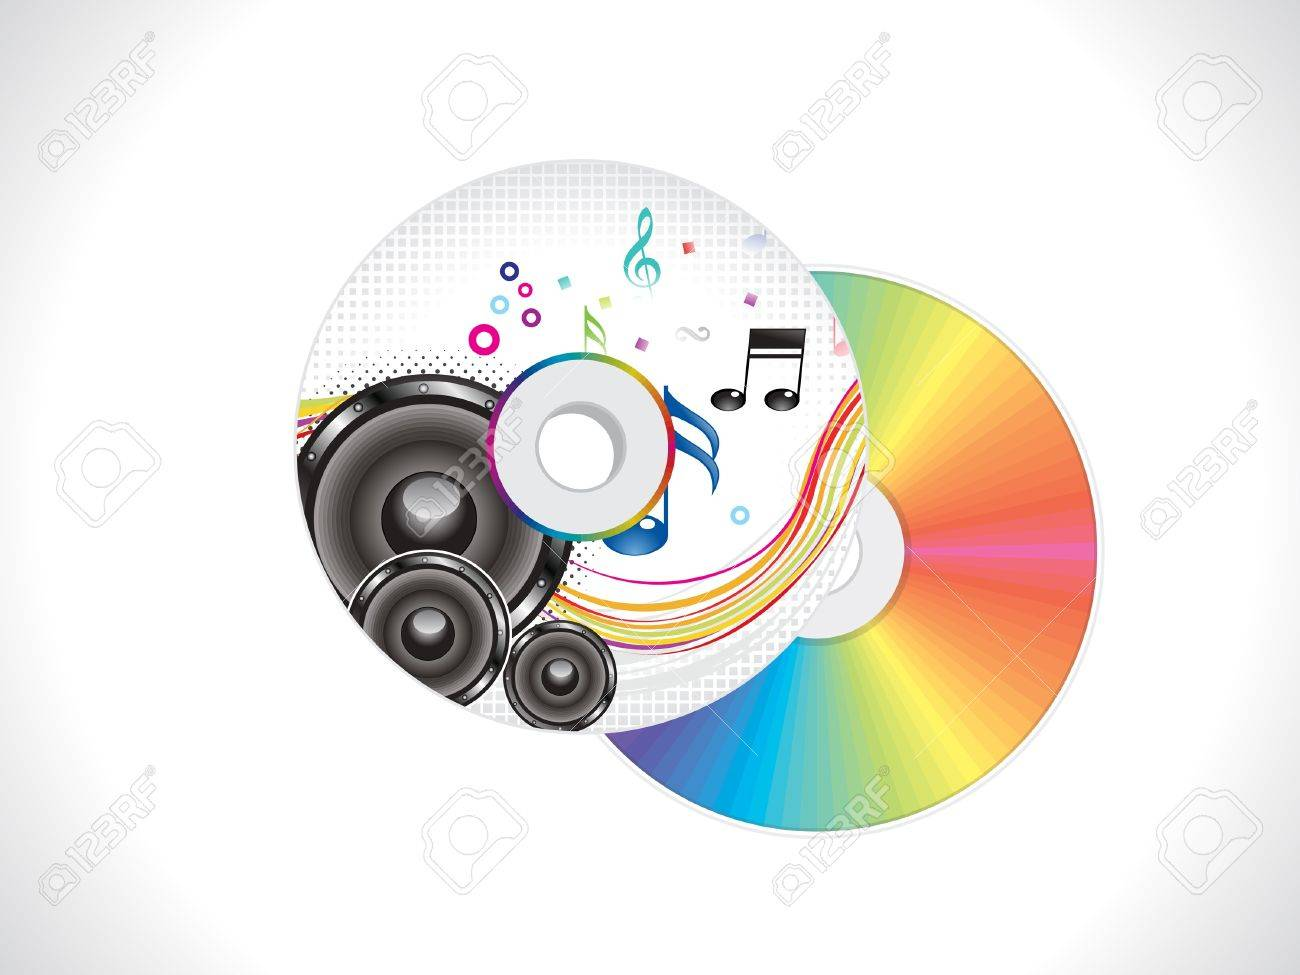 Cd box template download free vector art stock graphics amp images - Vector Cd Template Abstract Colorful Musical Cd Cover Template Vector Illustration